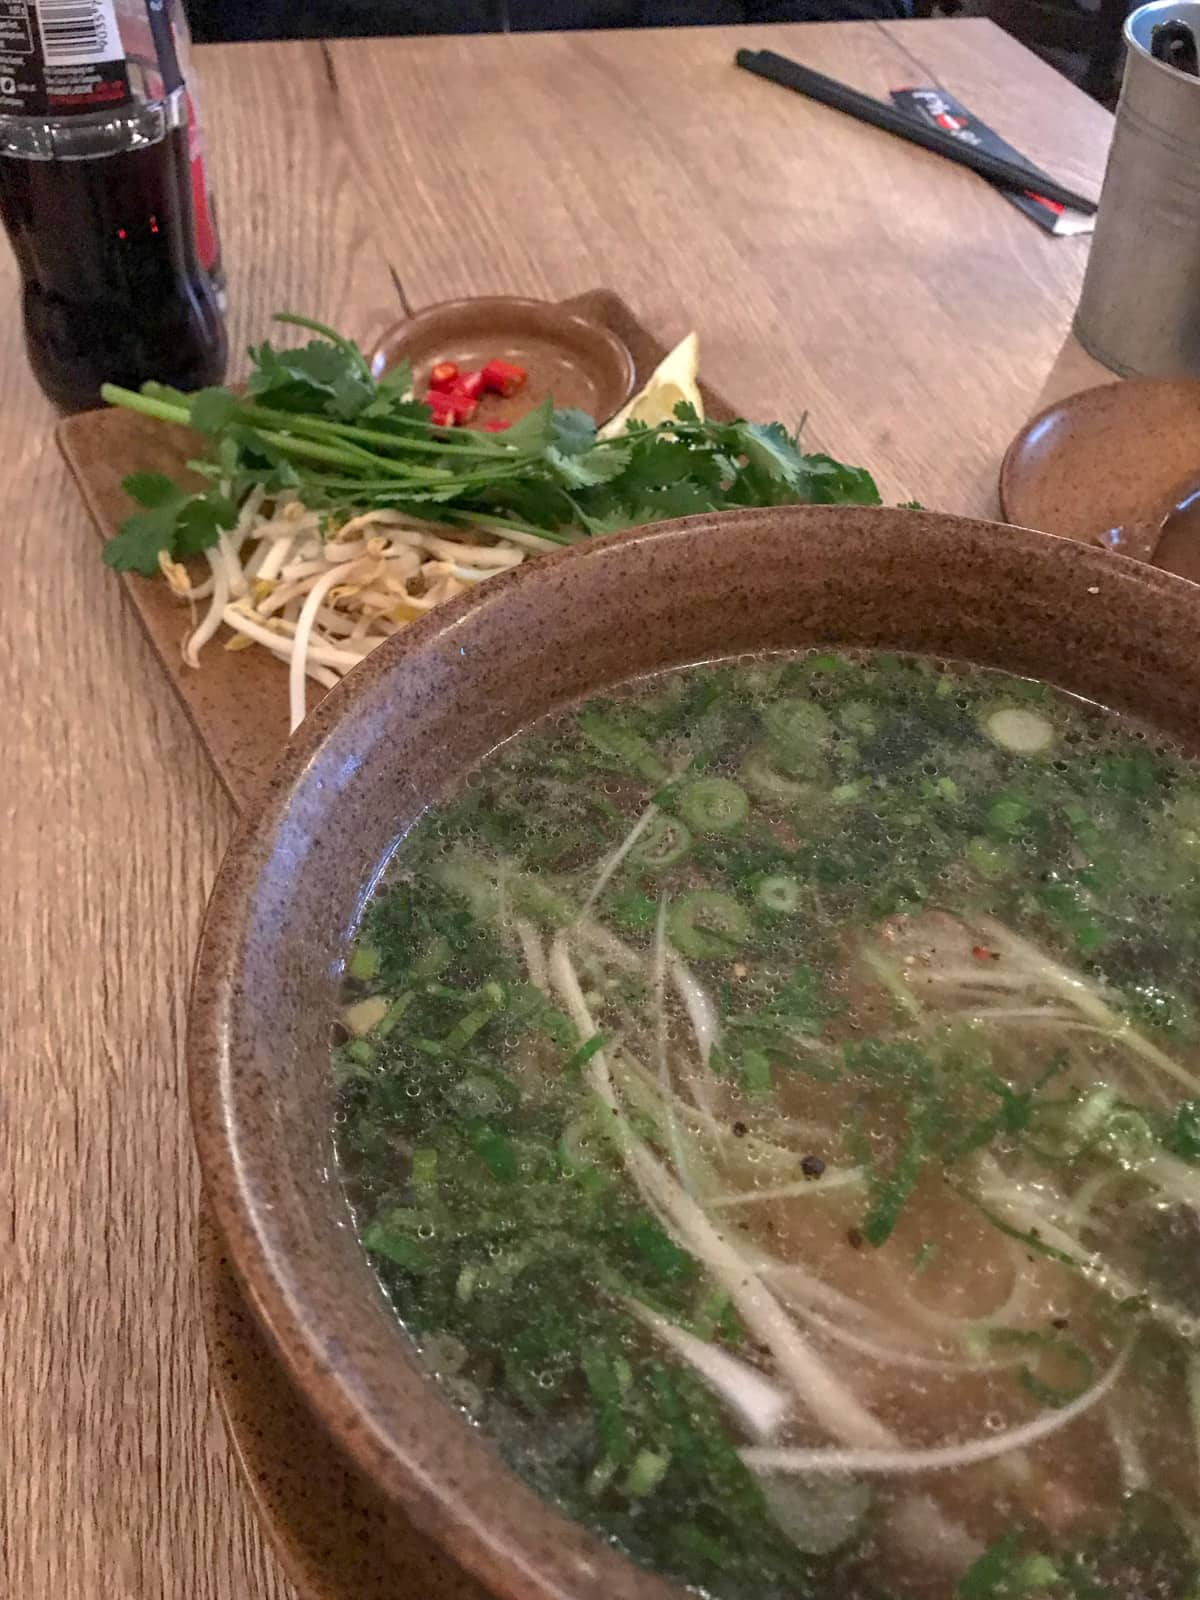 A brown bowl of Vietnamese pho noodles. In the background is a small plate with bean sprouts, coriander and chilli